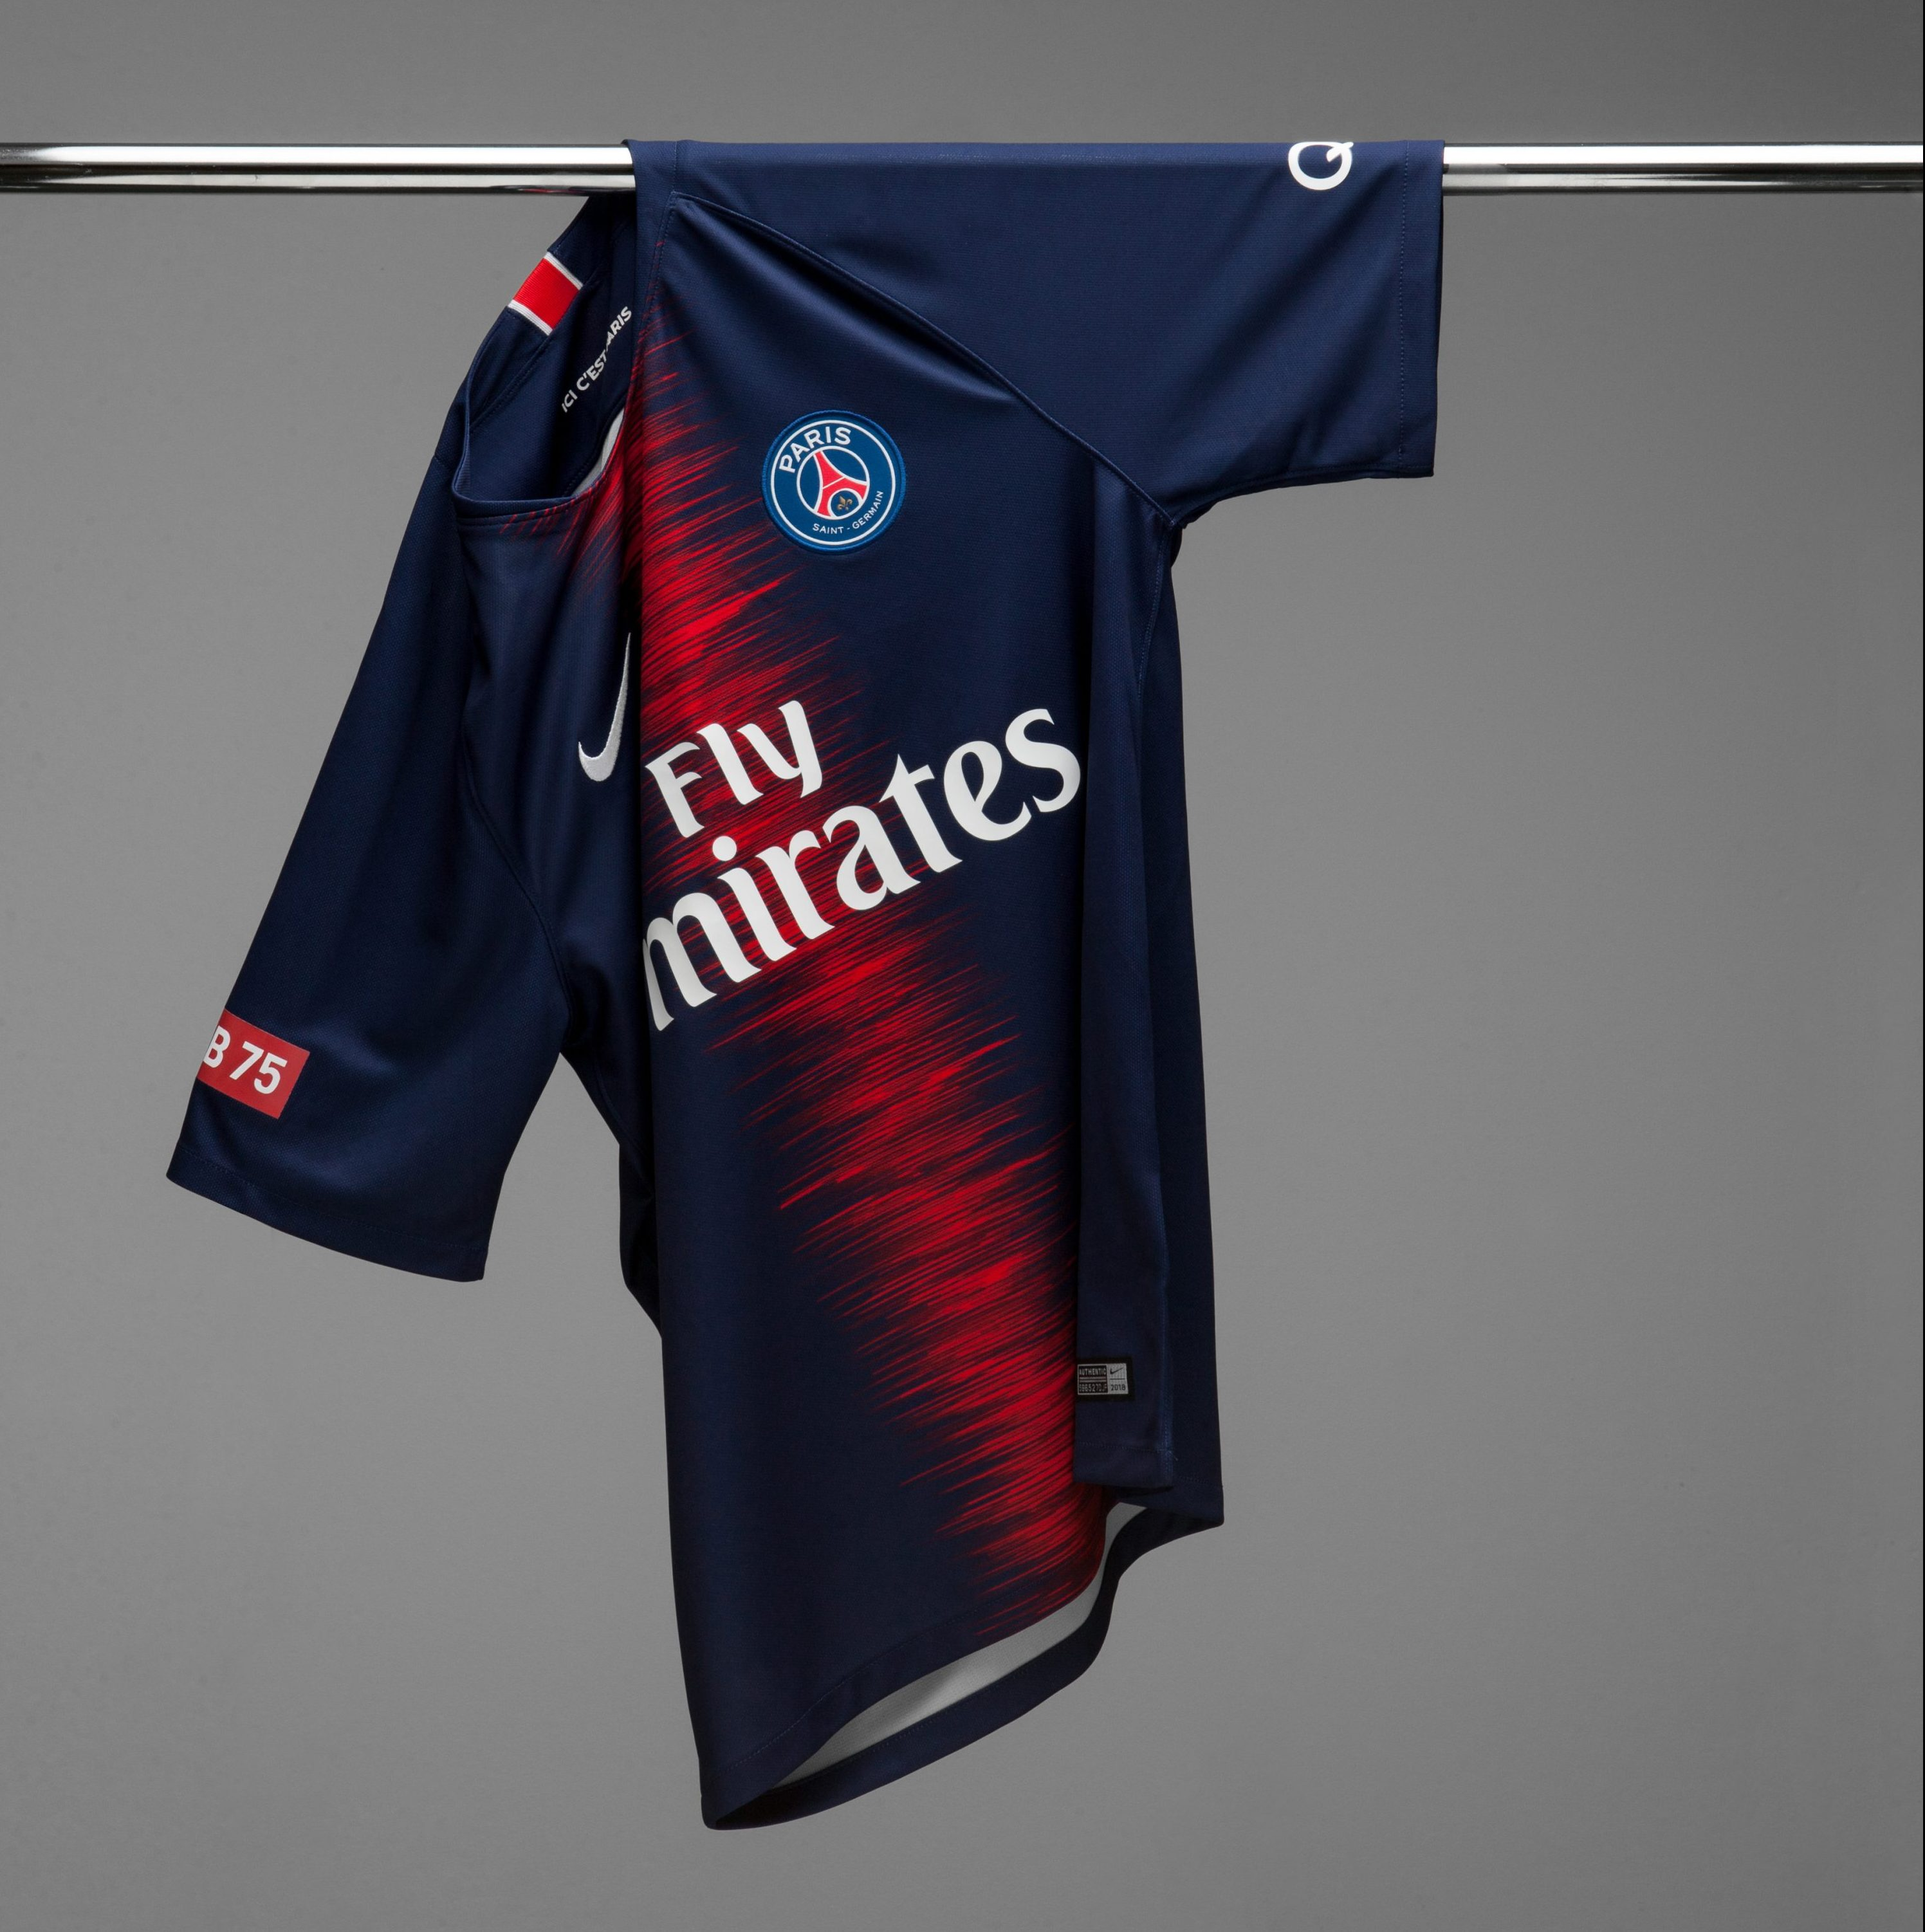 b5d16294843 Paris Saint-Germain and Club 75 Link Up for New Capsule Collection. Ed  Bangers. By Jacob Davey. October 4th 2018. Image via Publicist